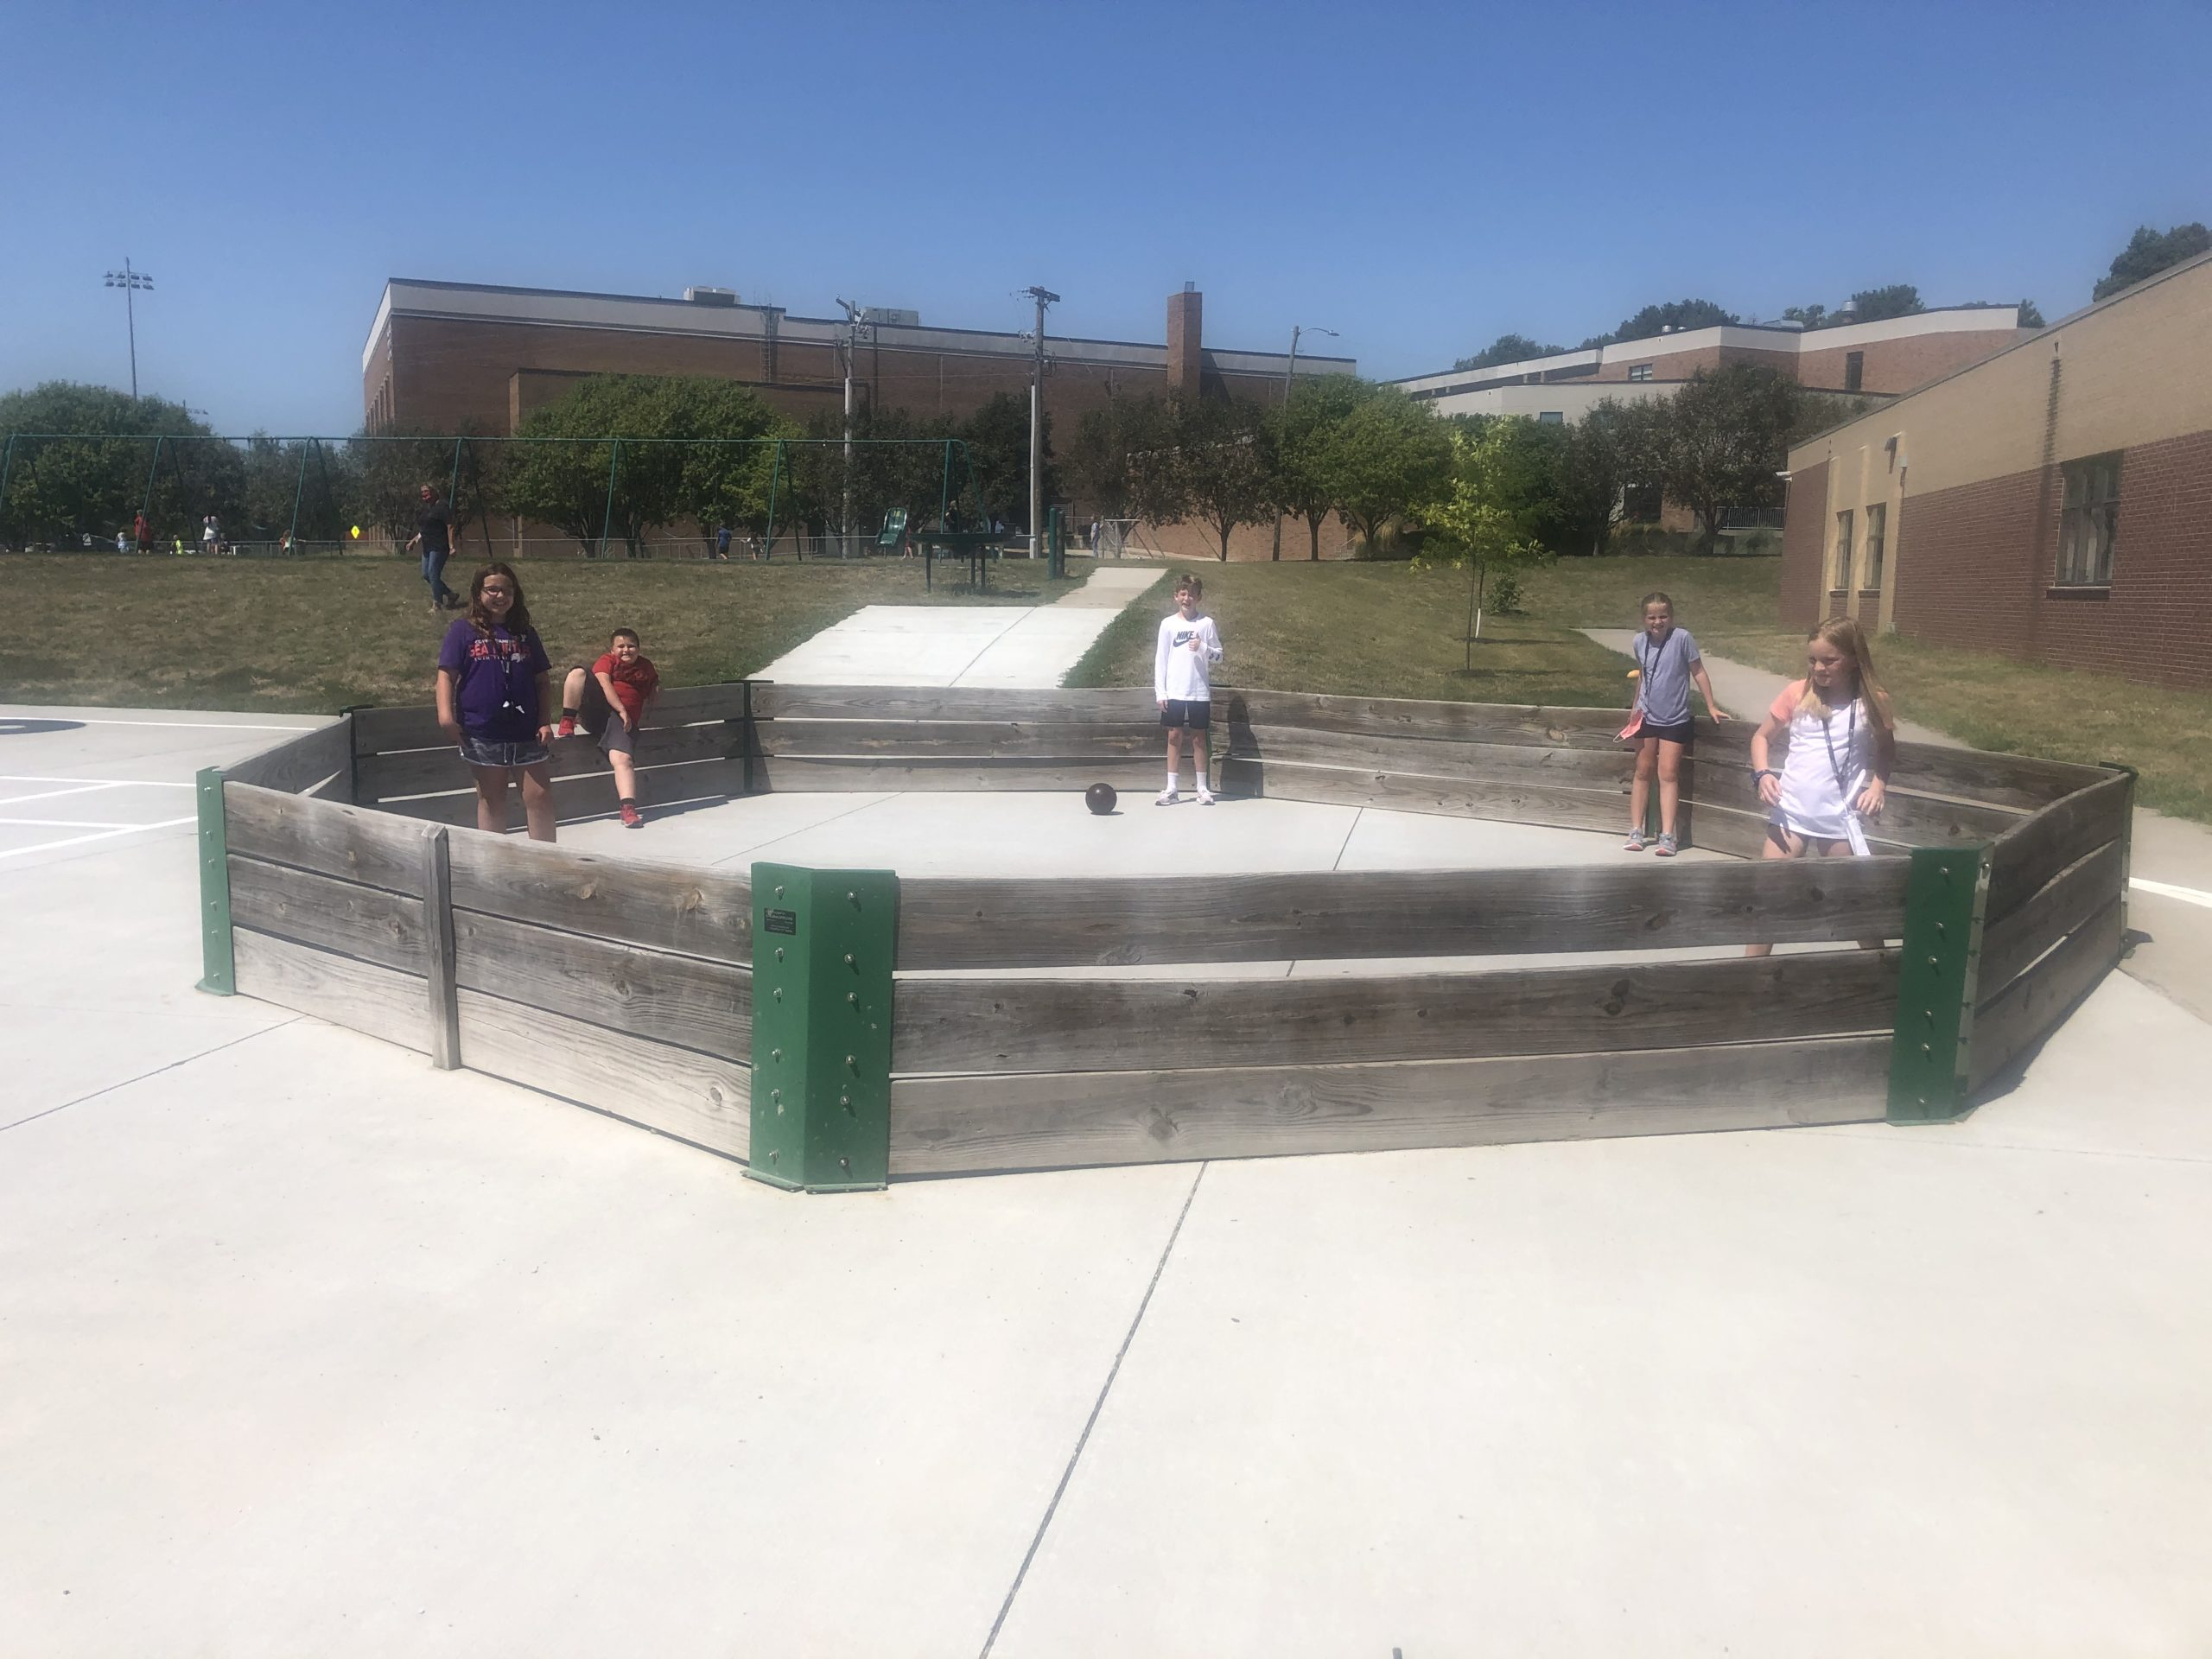 Students in gaga ball pit